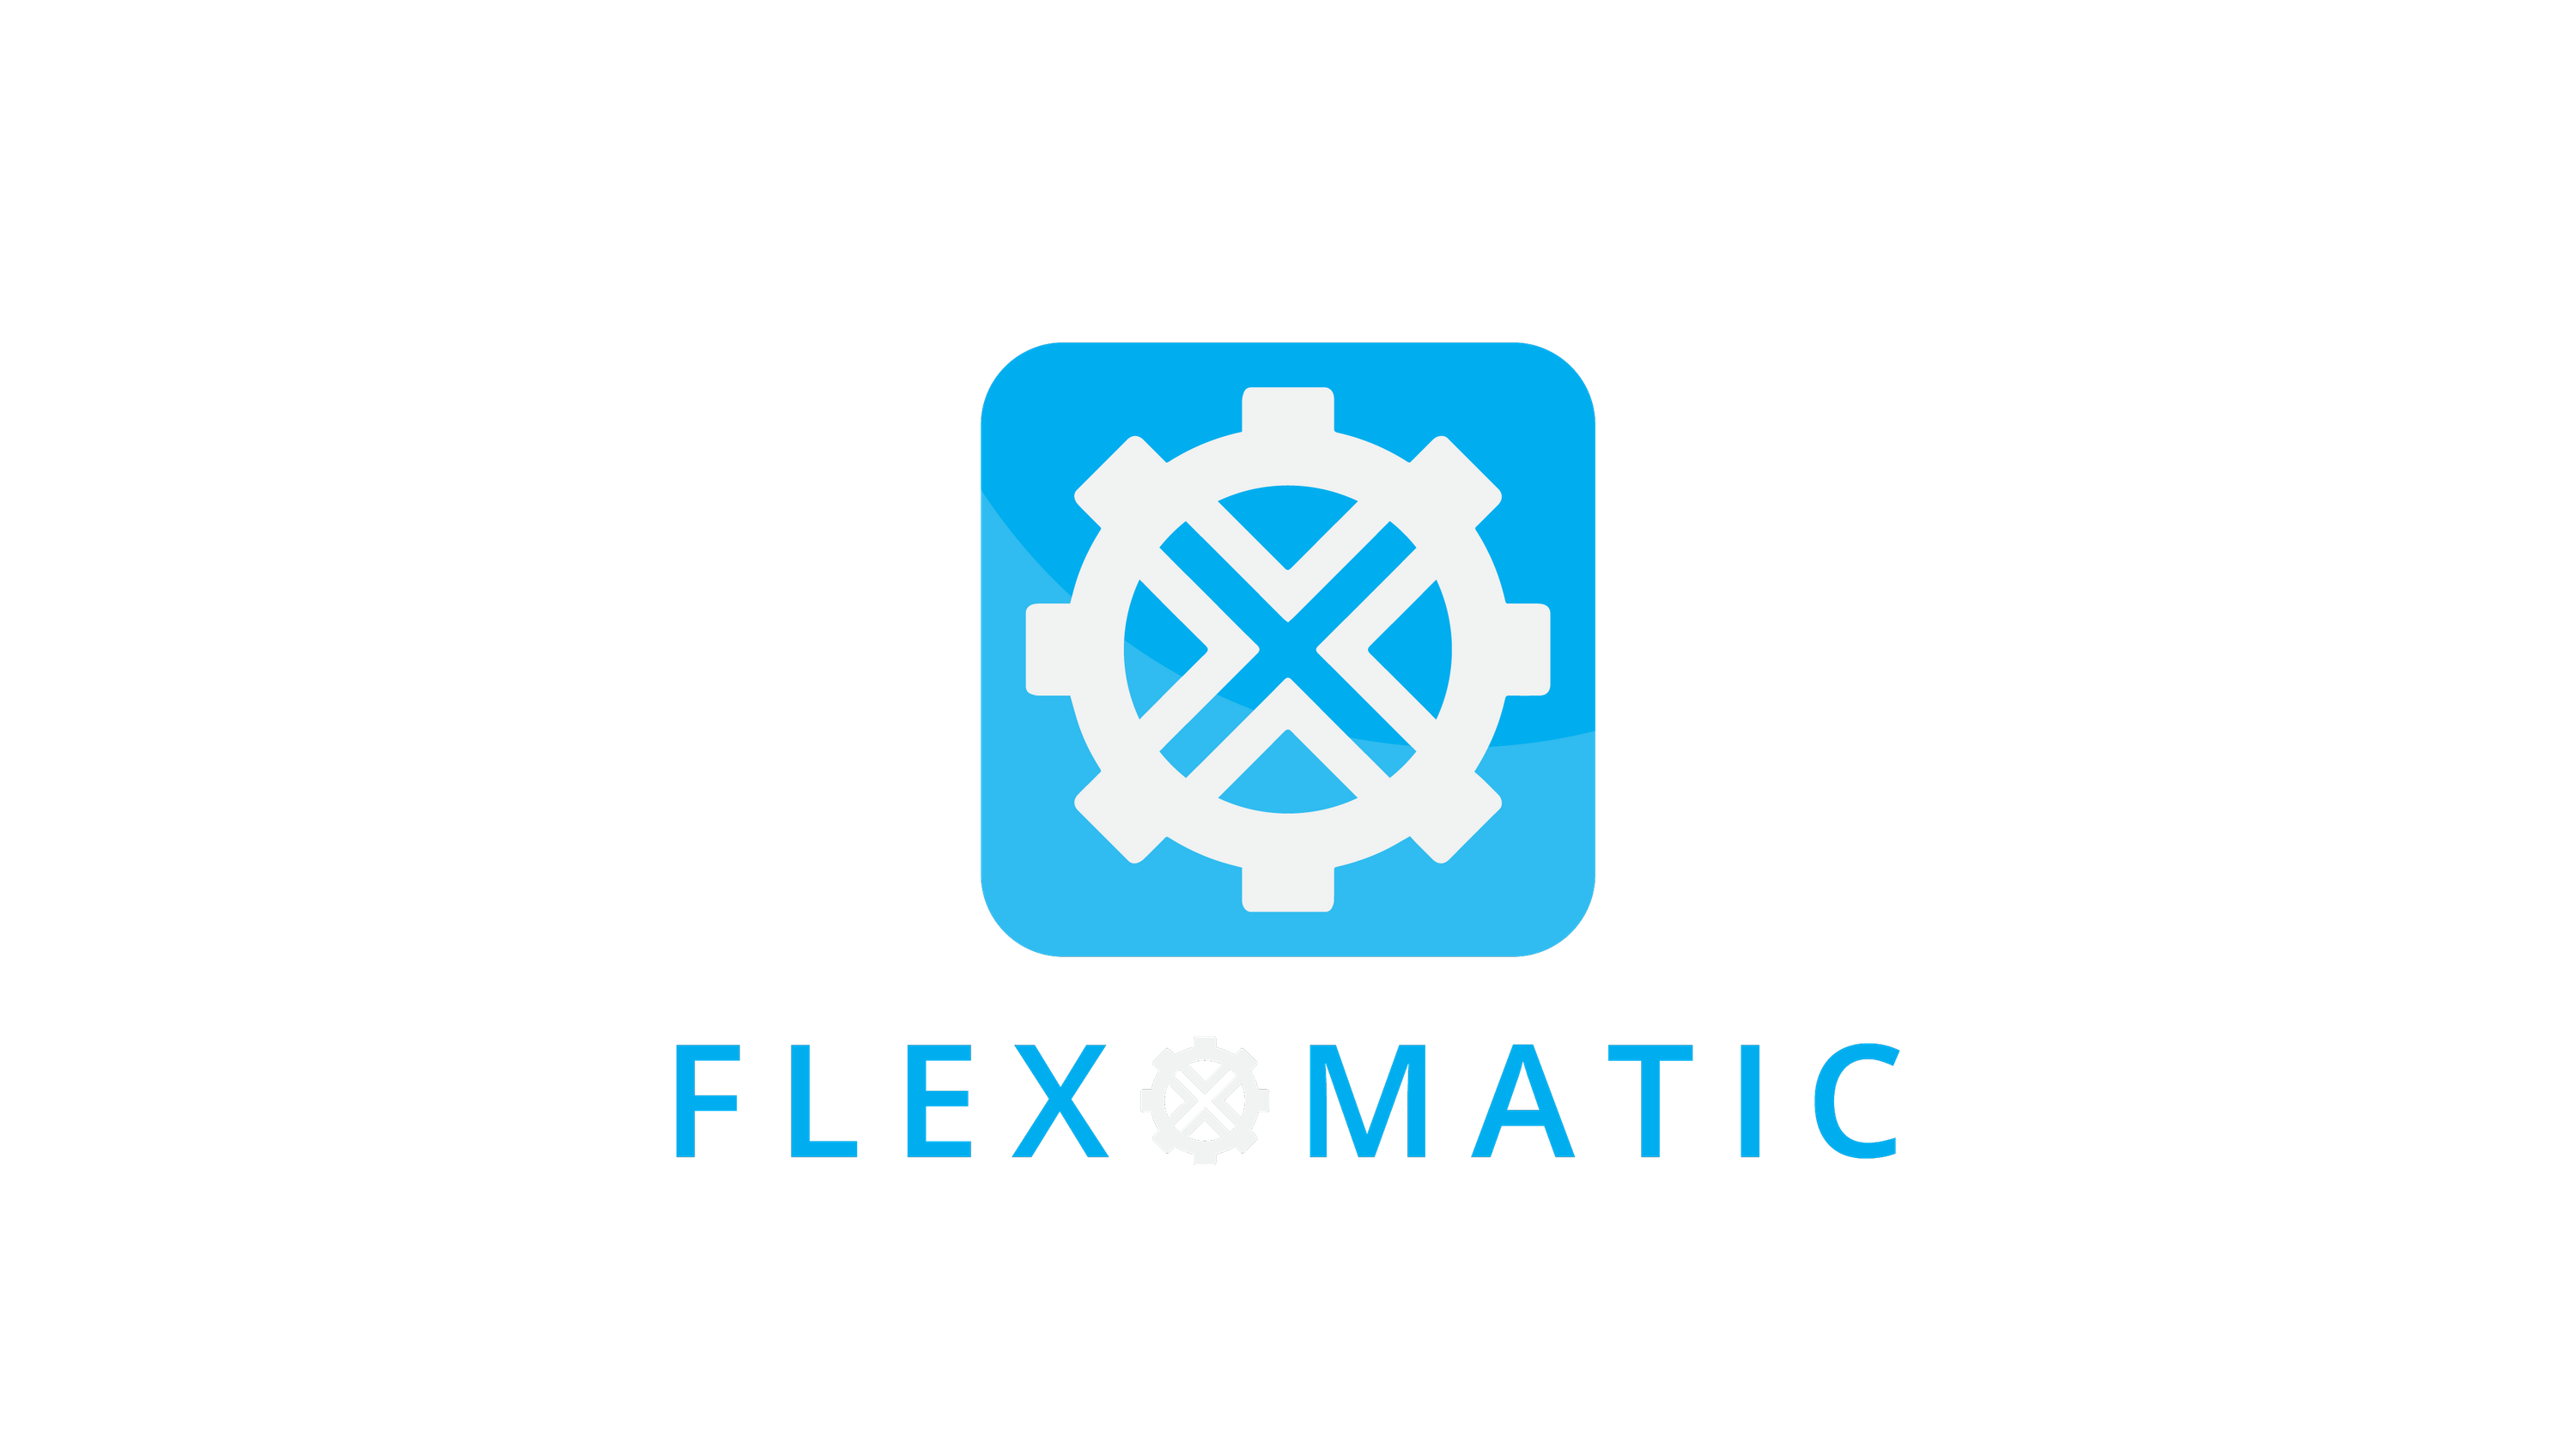 Flexomatic is an app that will catch AmazonFlex blocks for you